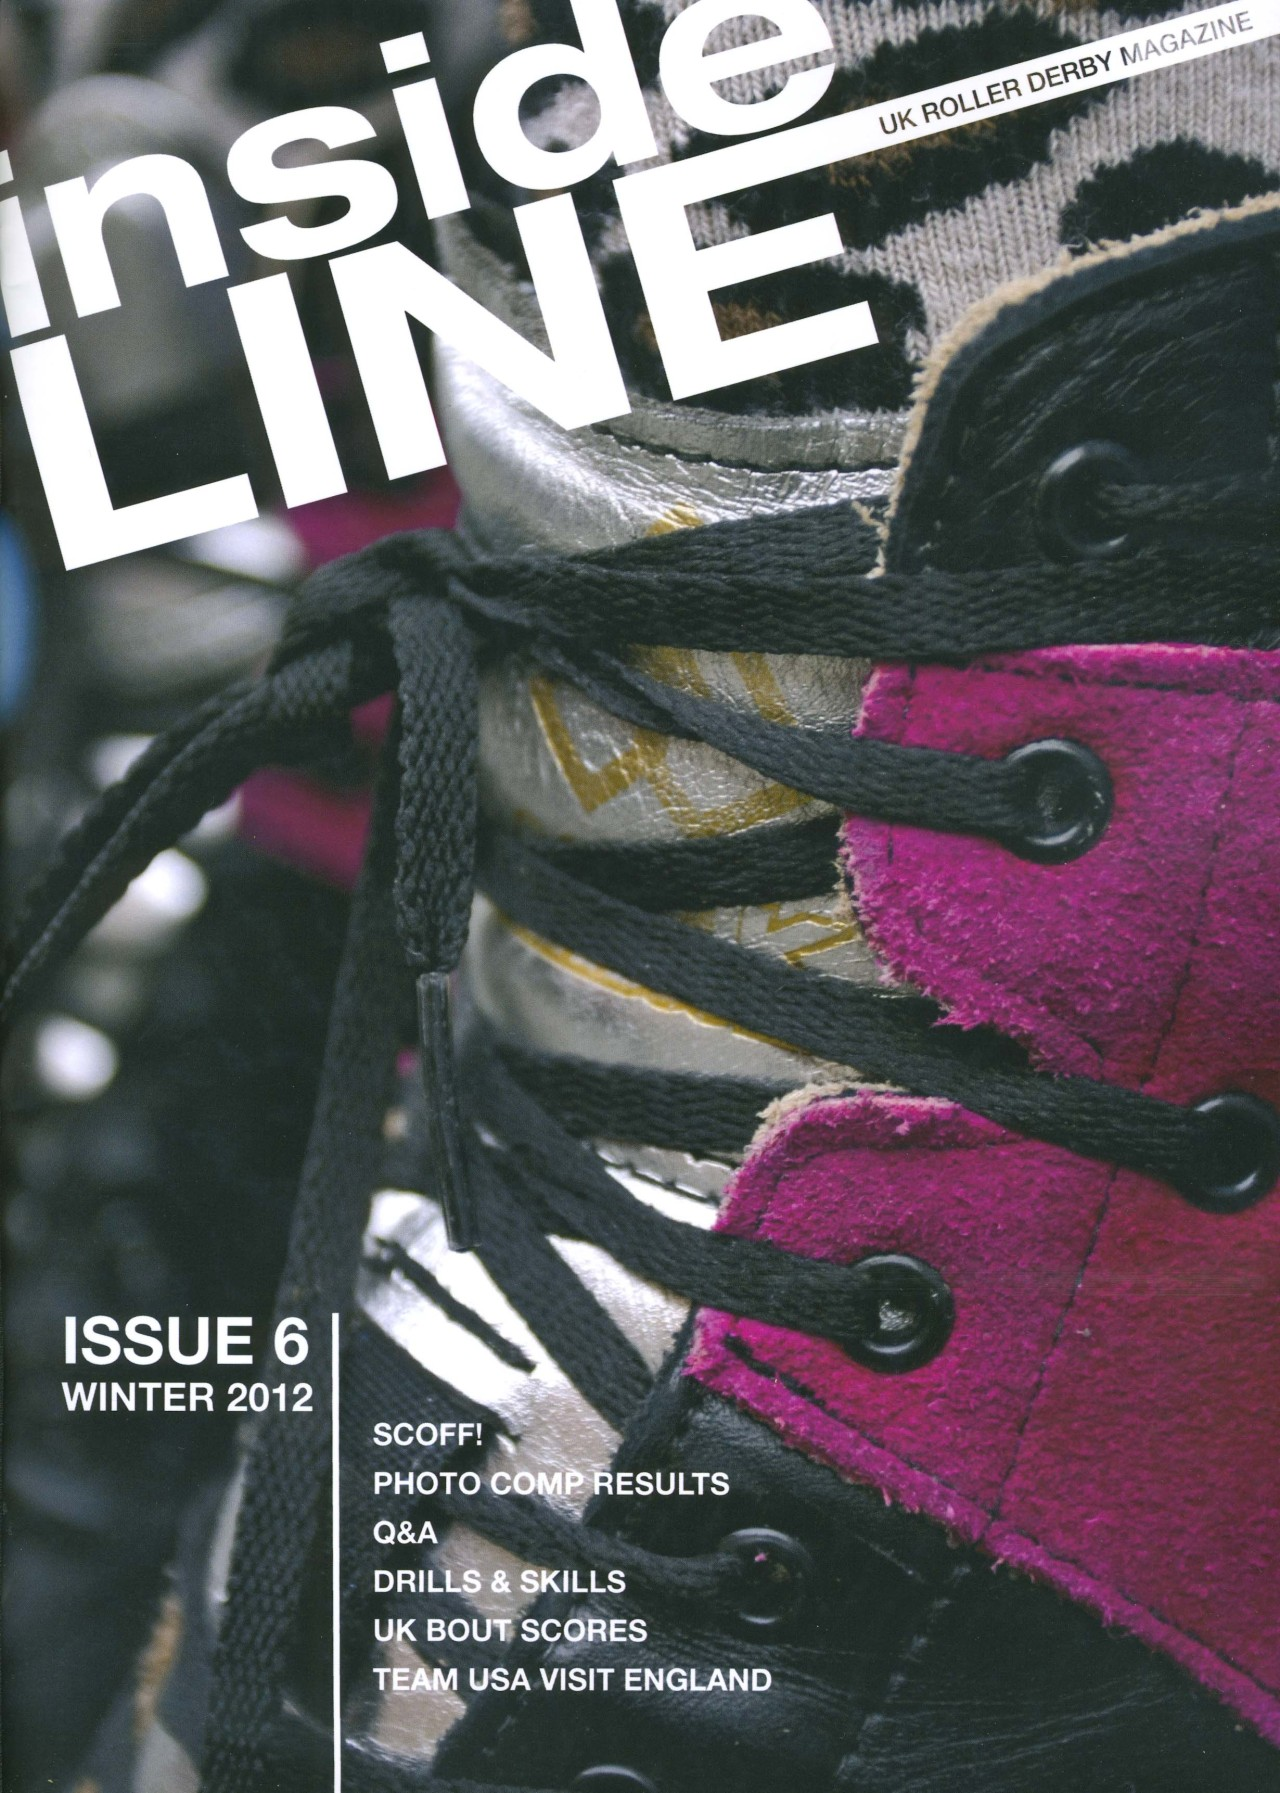 just realized i forgot to post about the december issue of inside line magazine! issue 6 contained the magazine's first photography contest which i helped organize, promote & judge alongside axle adams, raw heidi, mixtress von uber vixen and synyster motives. it was so tough to choose! but there was one clear winner: punkmarko  punkmarko is super cool, and had a wealth of useful information to share in the Q&A. please note that the photos you see above from the Q&A belong to him! : ) the gorgeous antiks on the cover belong to tattooed terror, of bristol roller derby. cover shot and Q&A: elena goodrum